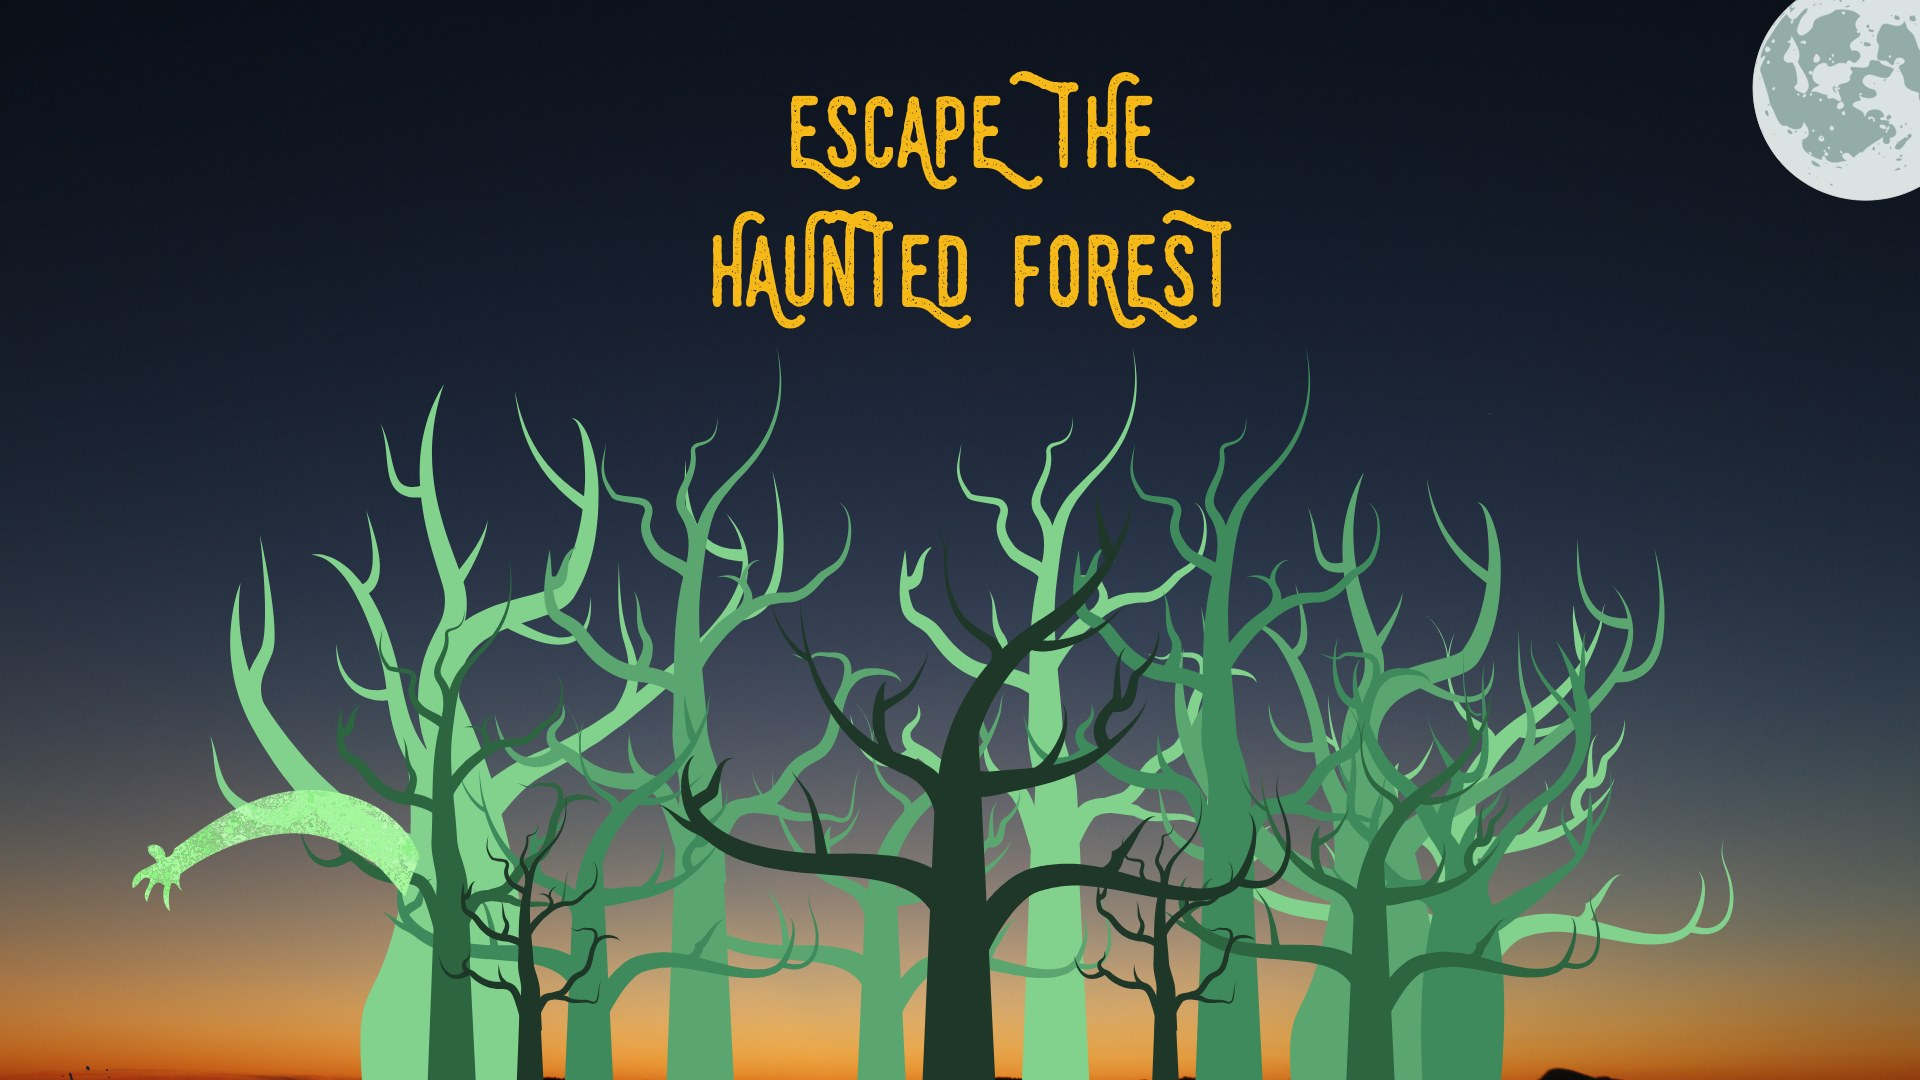 Escape The Haunted Forest